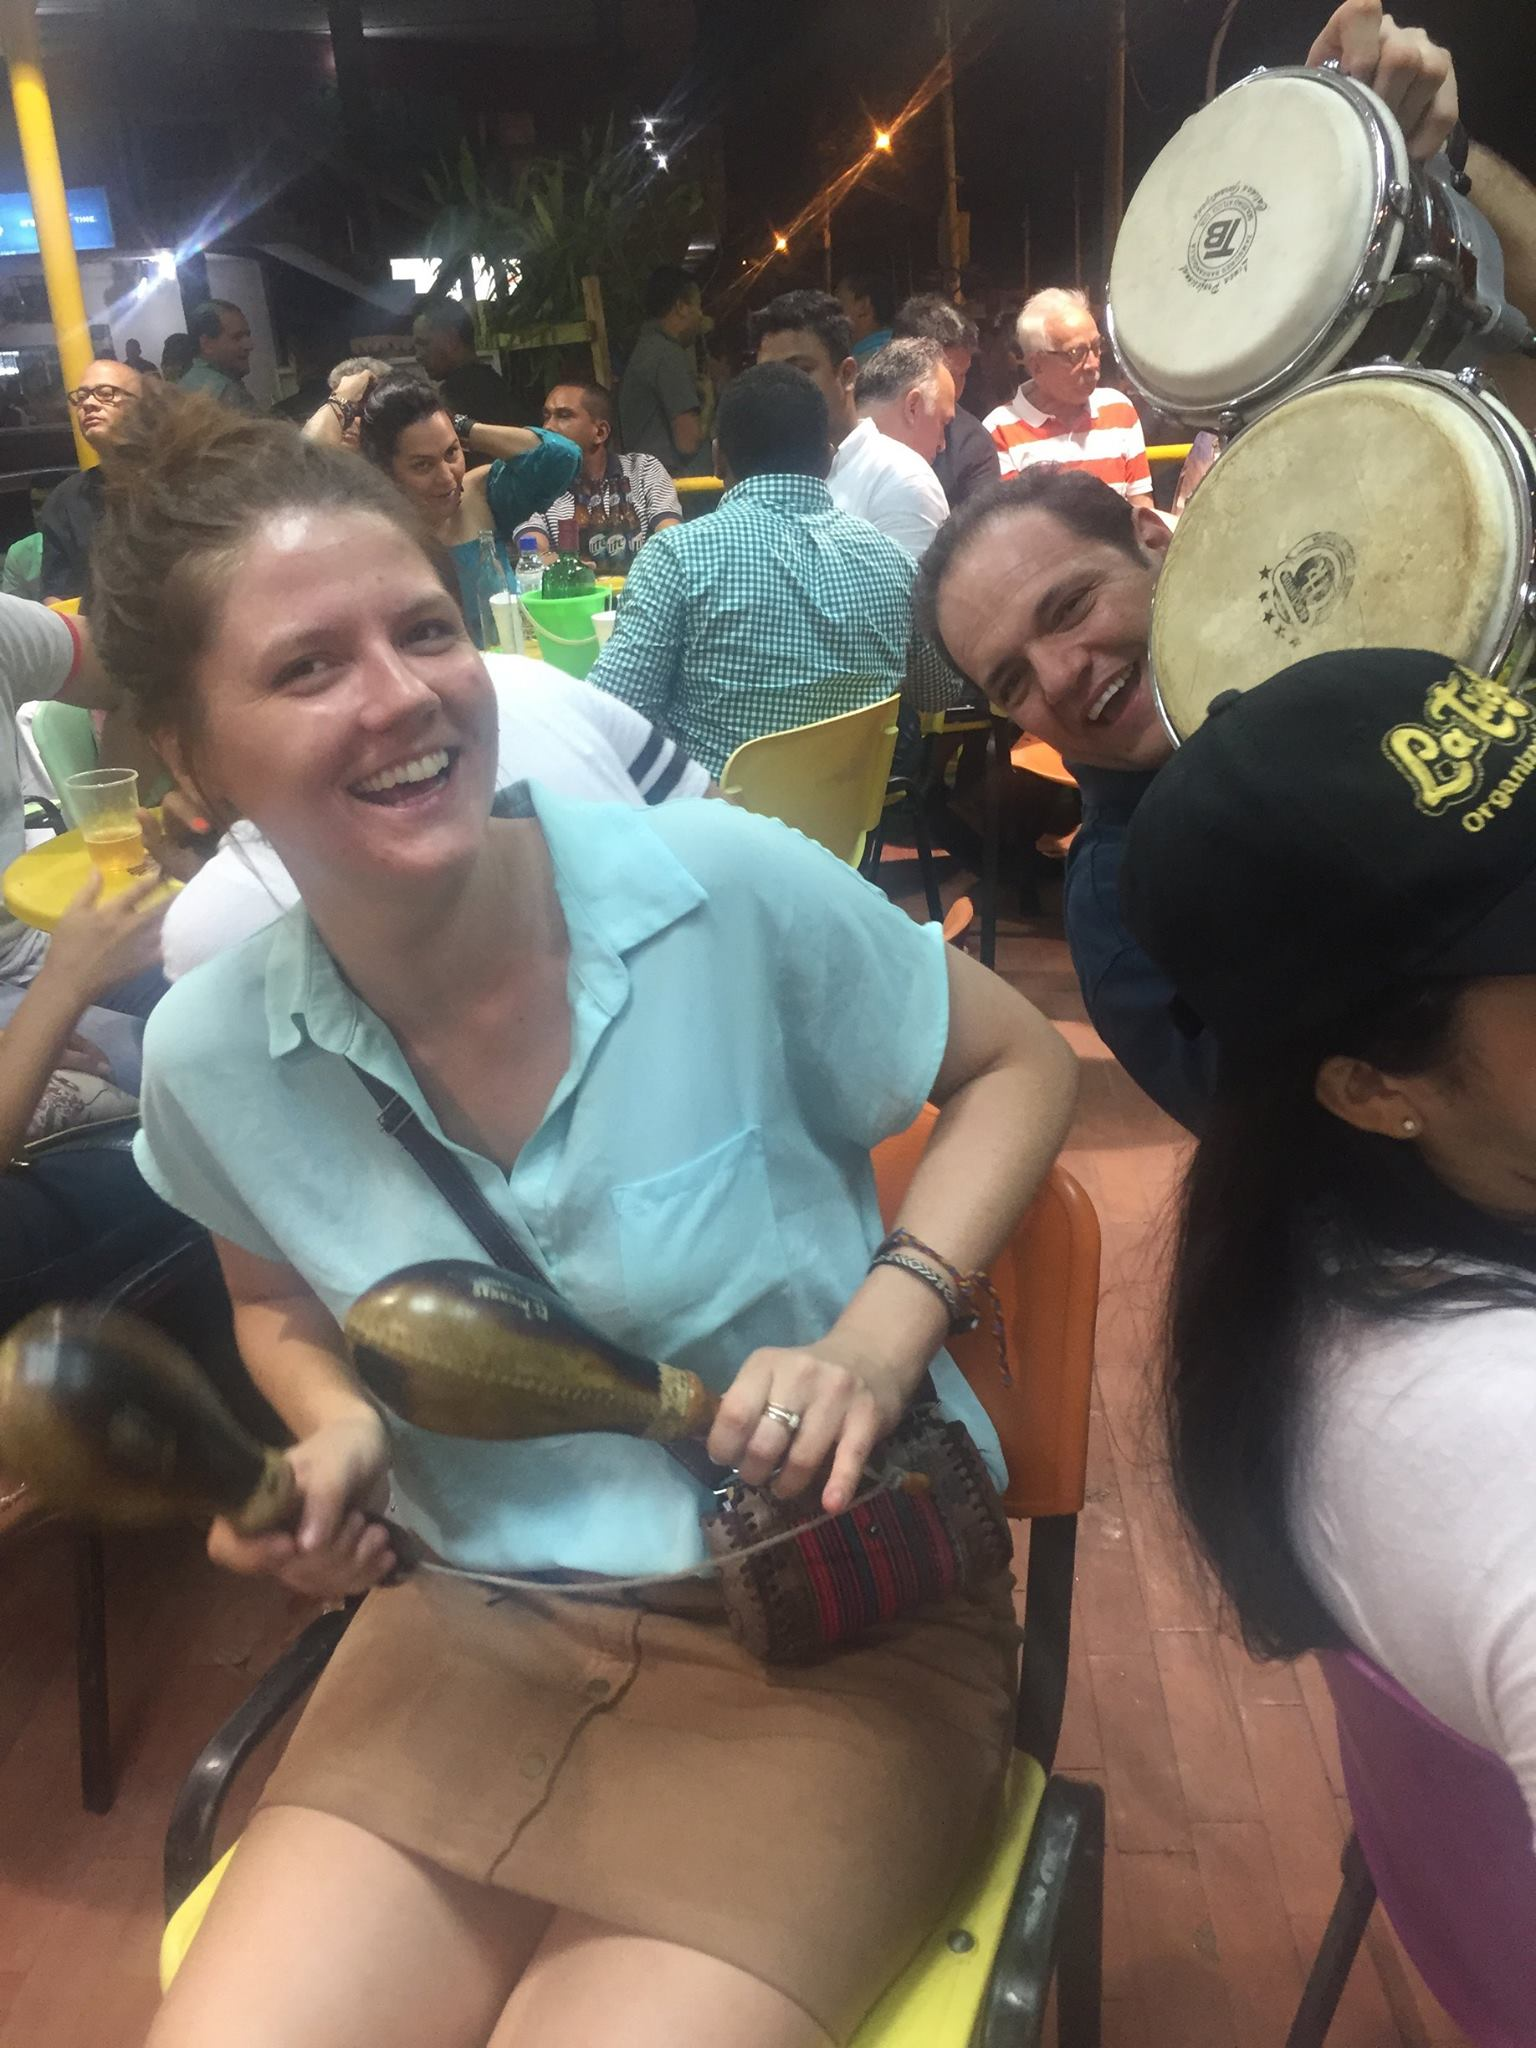 The neighbors brought their own drums - such a fun night!